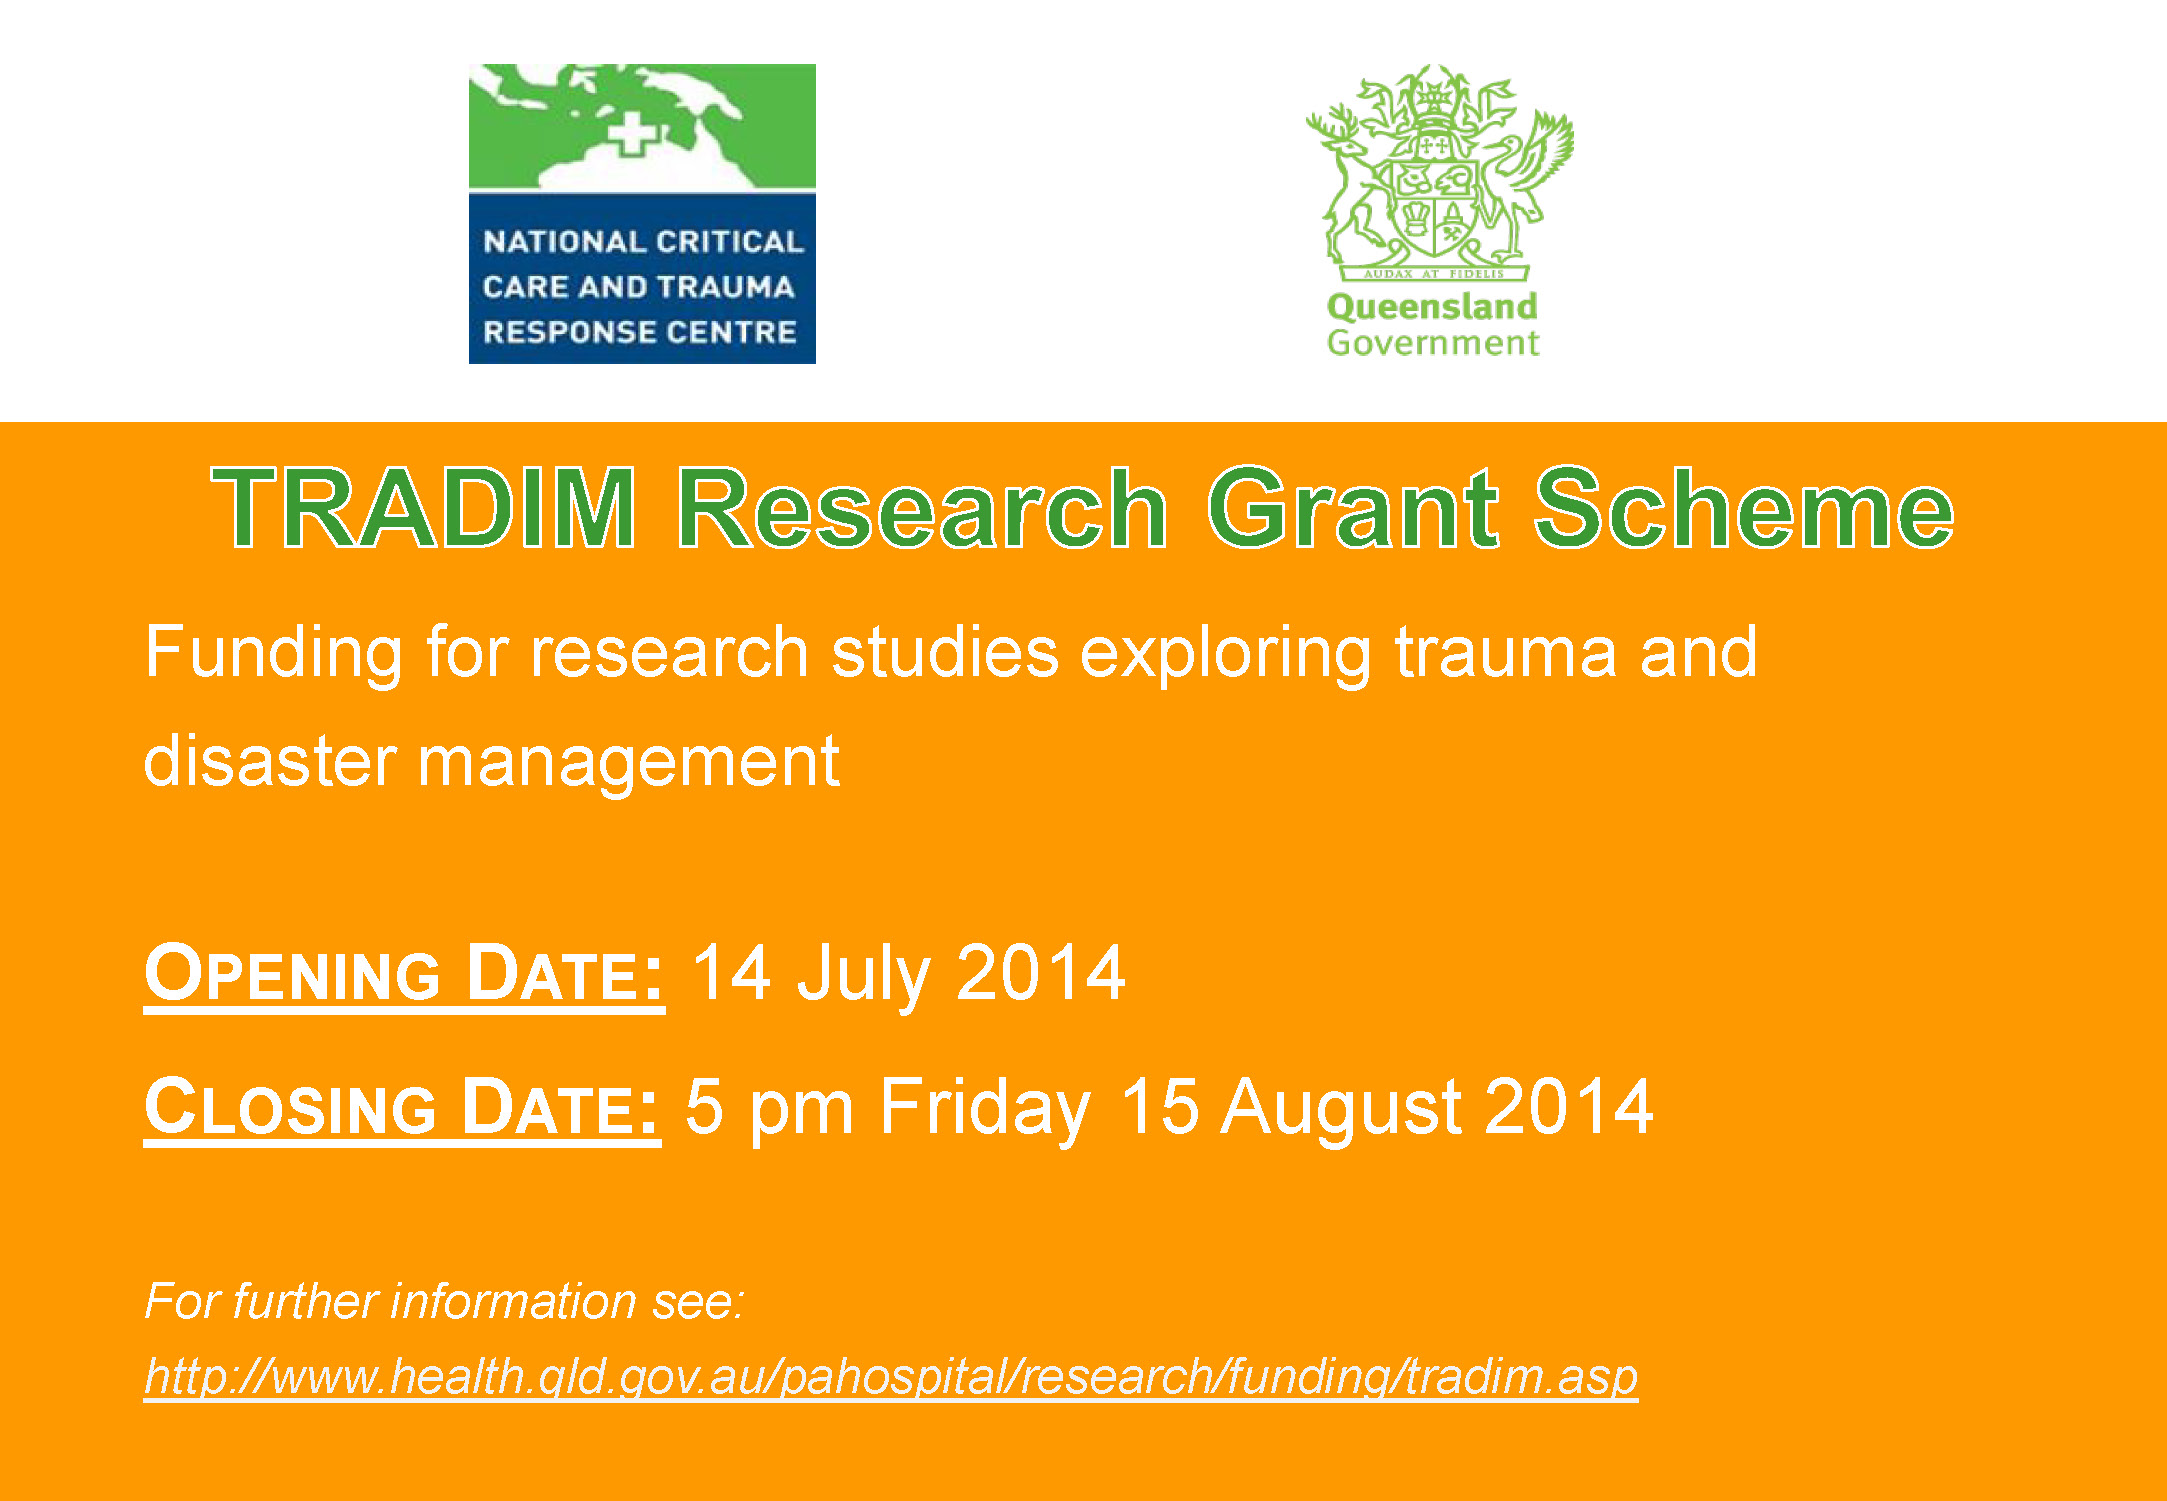 TRADIM Research Grant Scheme - submissions open!